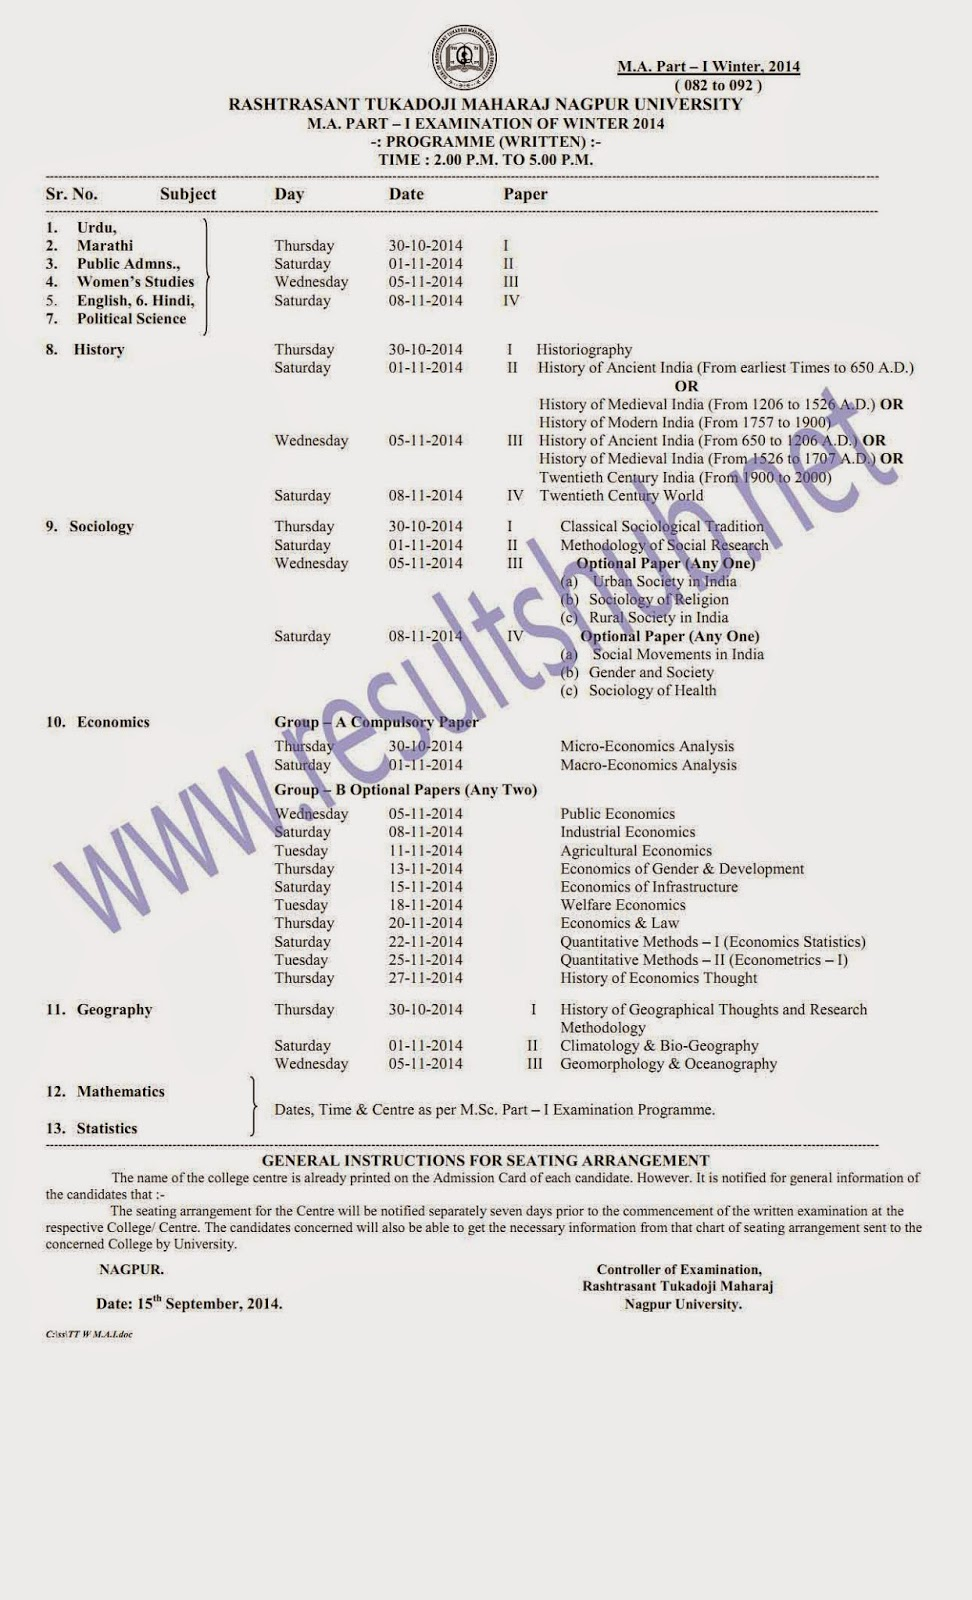 MA Part 1 Winter 2014 Timetable RTM Nagpur University